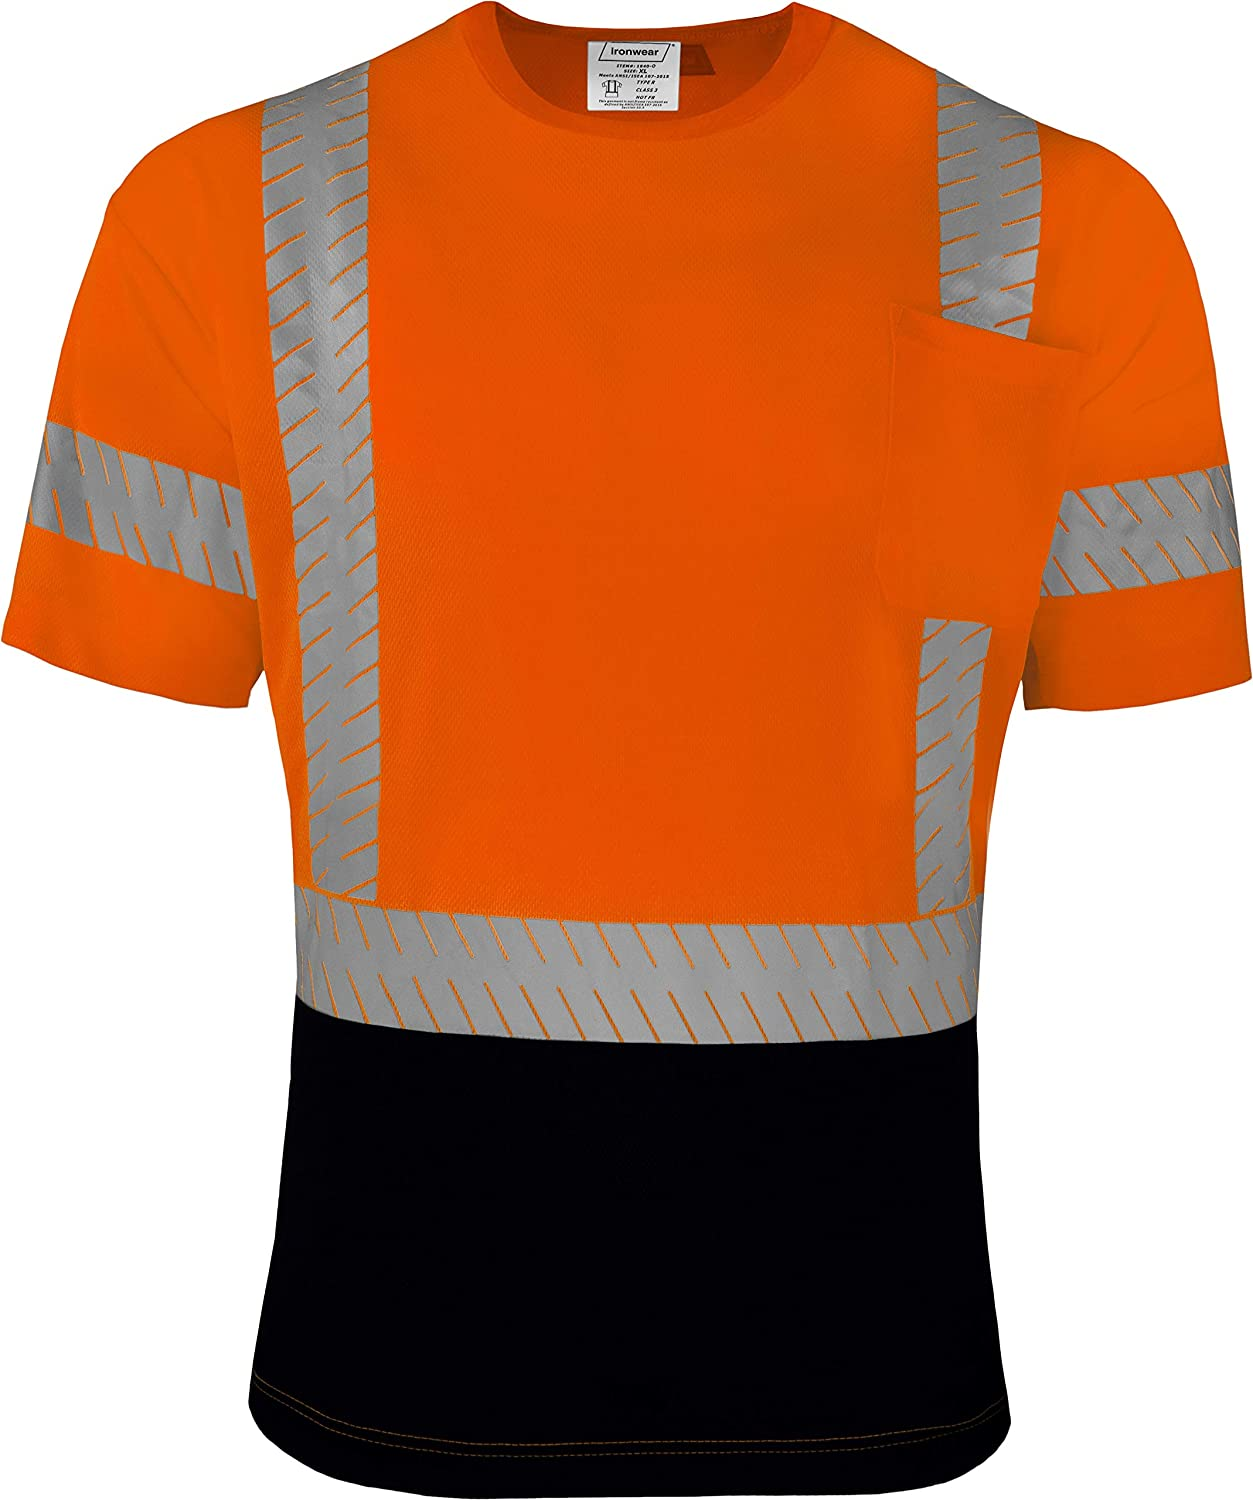 safety Ironwear 1840 Class 3 Hi-Vis Two-Toned Reflecti Time sale Transferred Heat